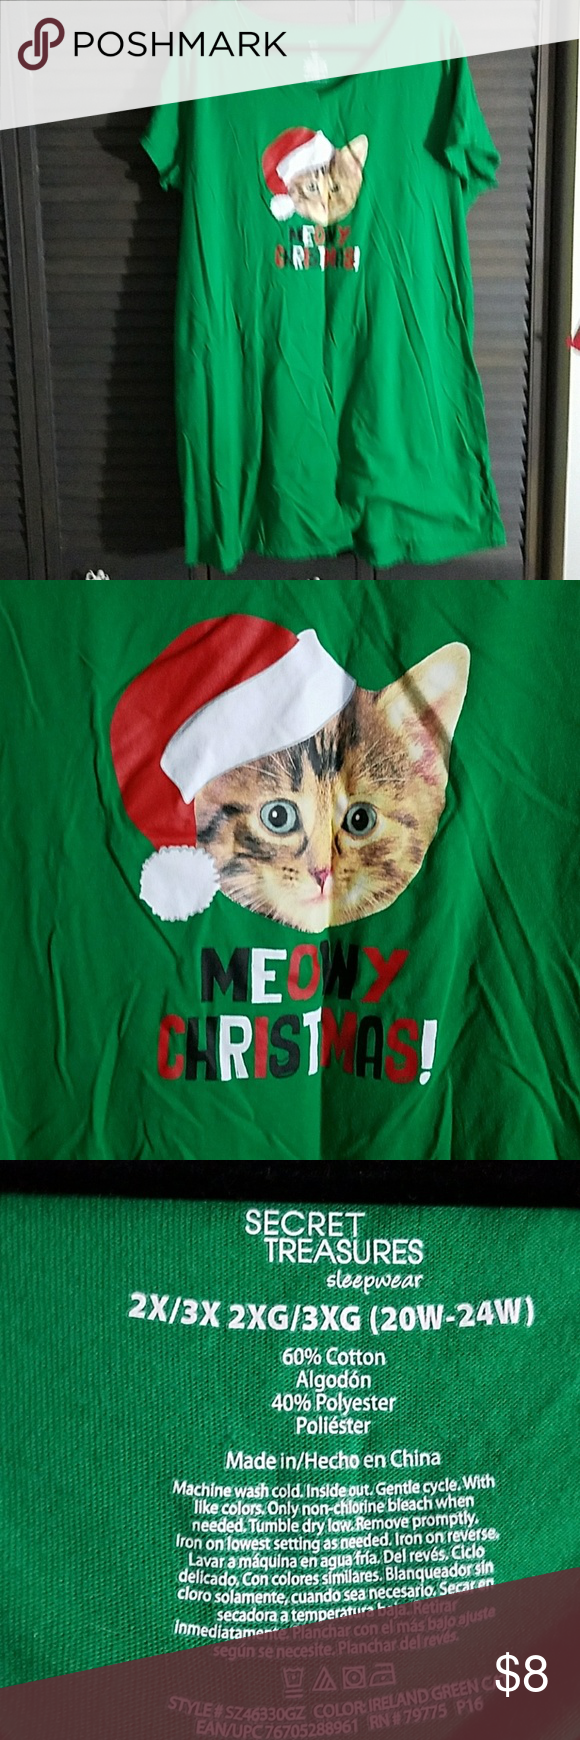 """Cute Sleep Shirt Super cute sleep shirt. Short sleeves. Has a cat and says meowy Christmas. In perfect used condition. Bust is 27"""" flat. Length is 37"""". secret treasures  Intimates & Sleepwear Pajamas"""